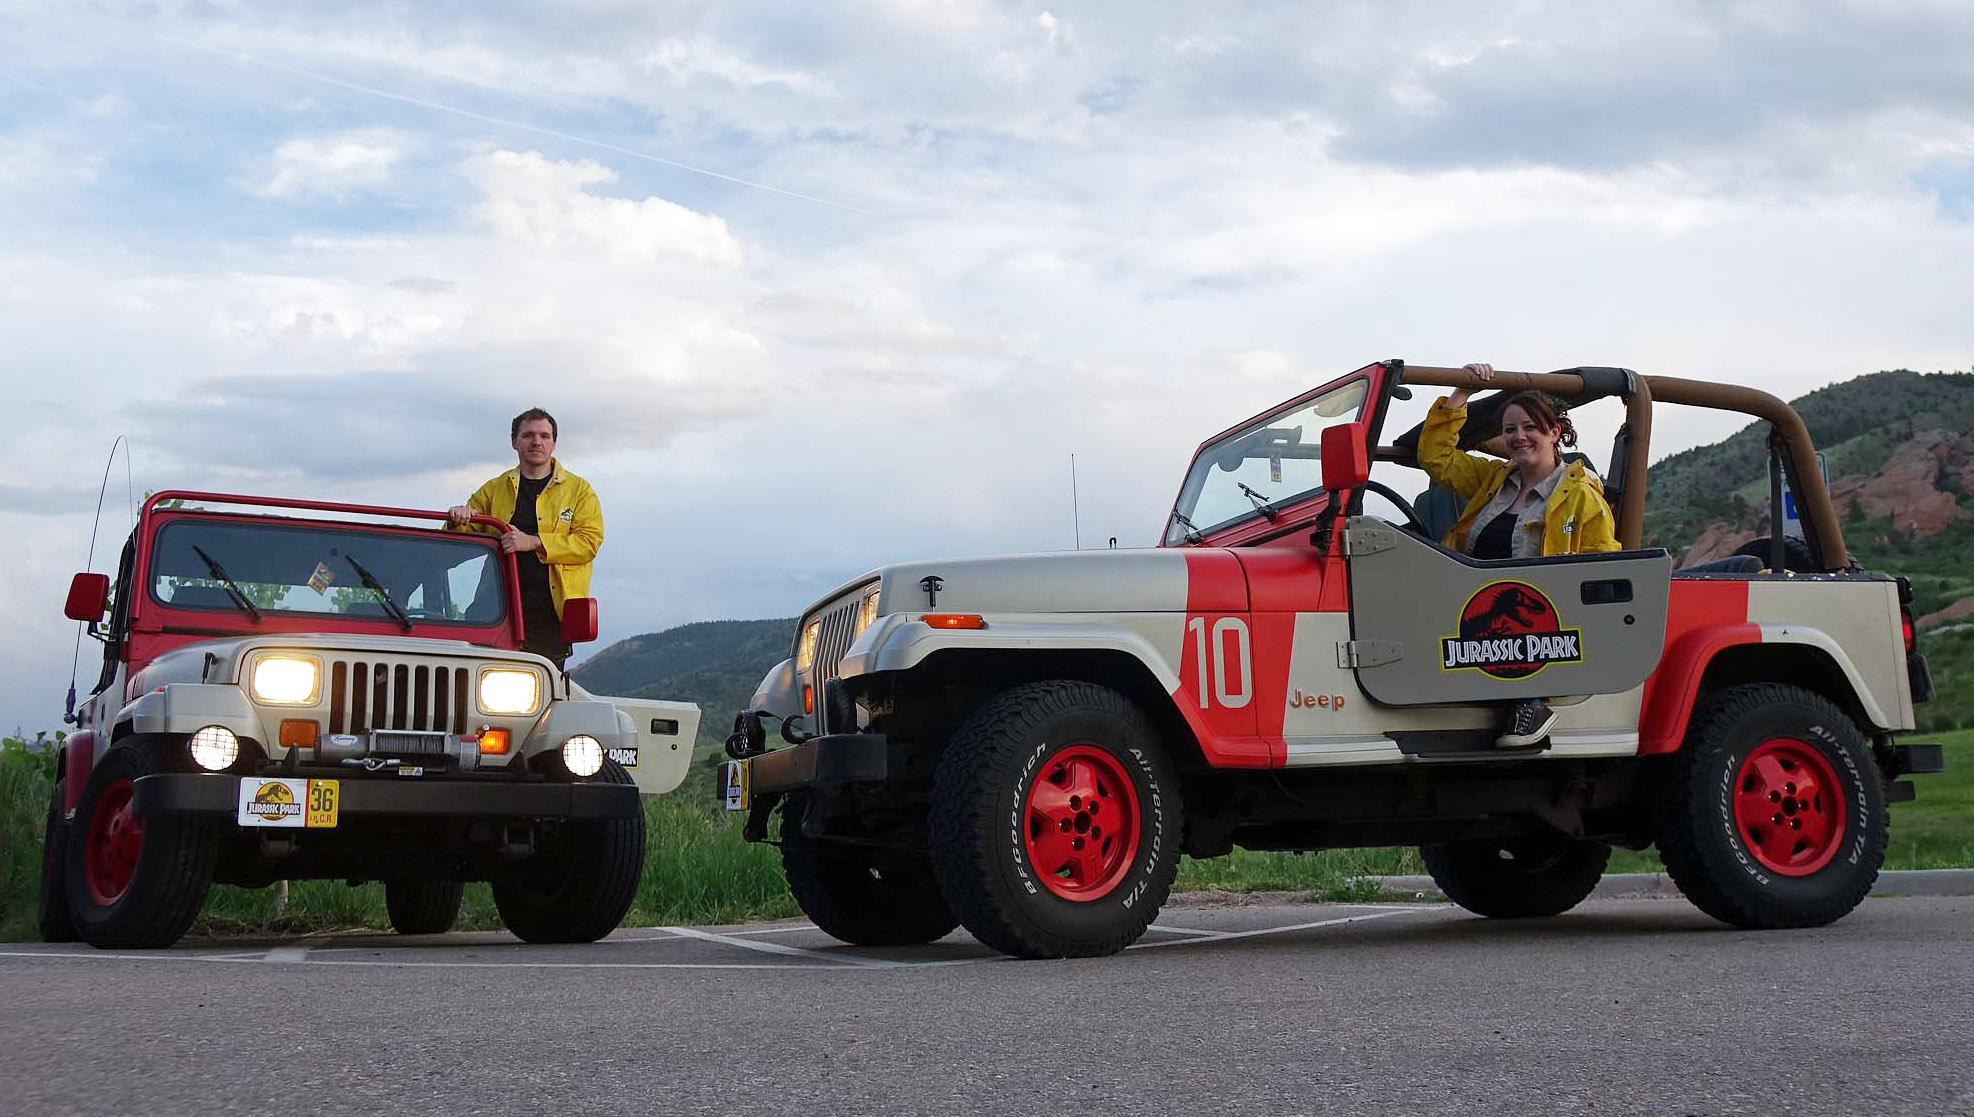 Build A Jeep >> A Different Kind Of Build The World Of Jurassic Park Jeep